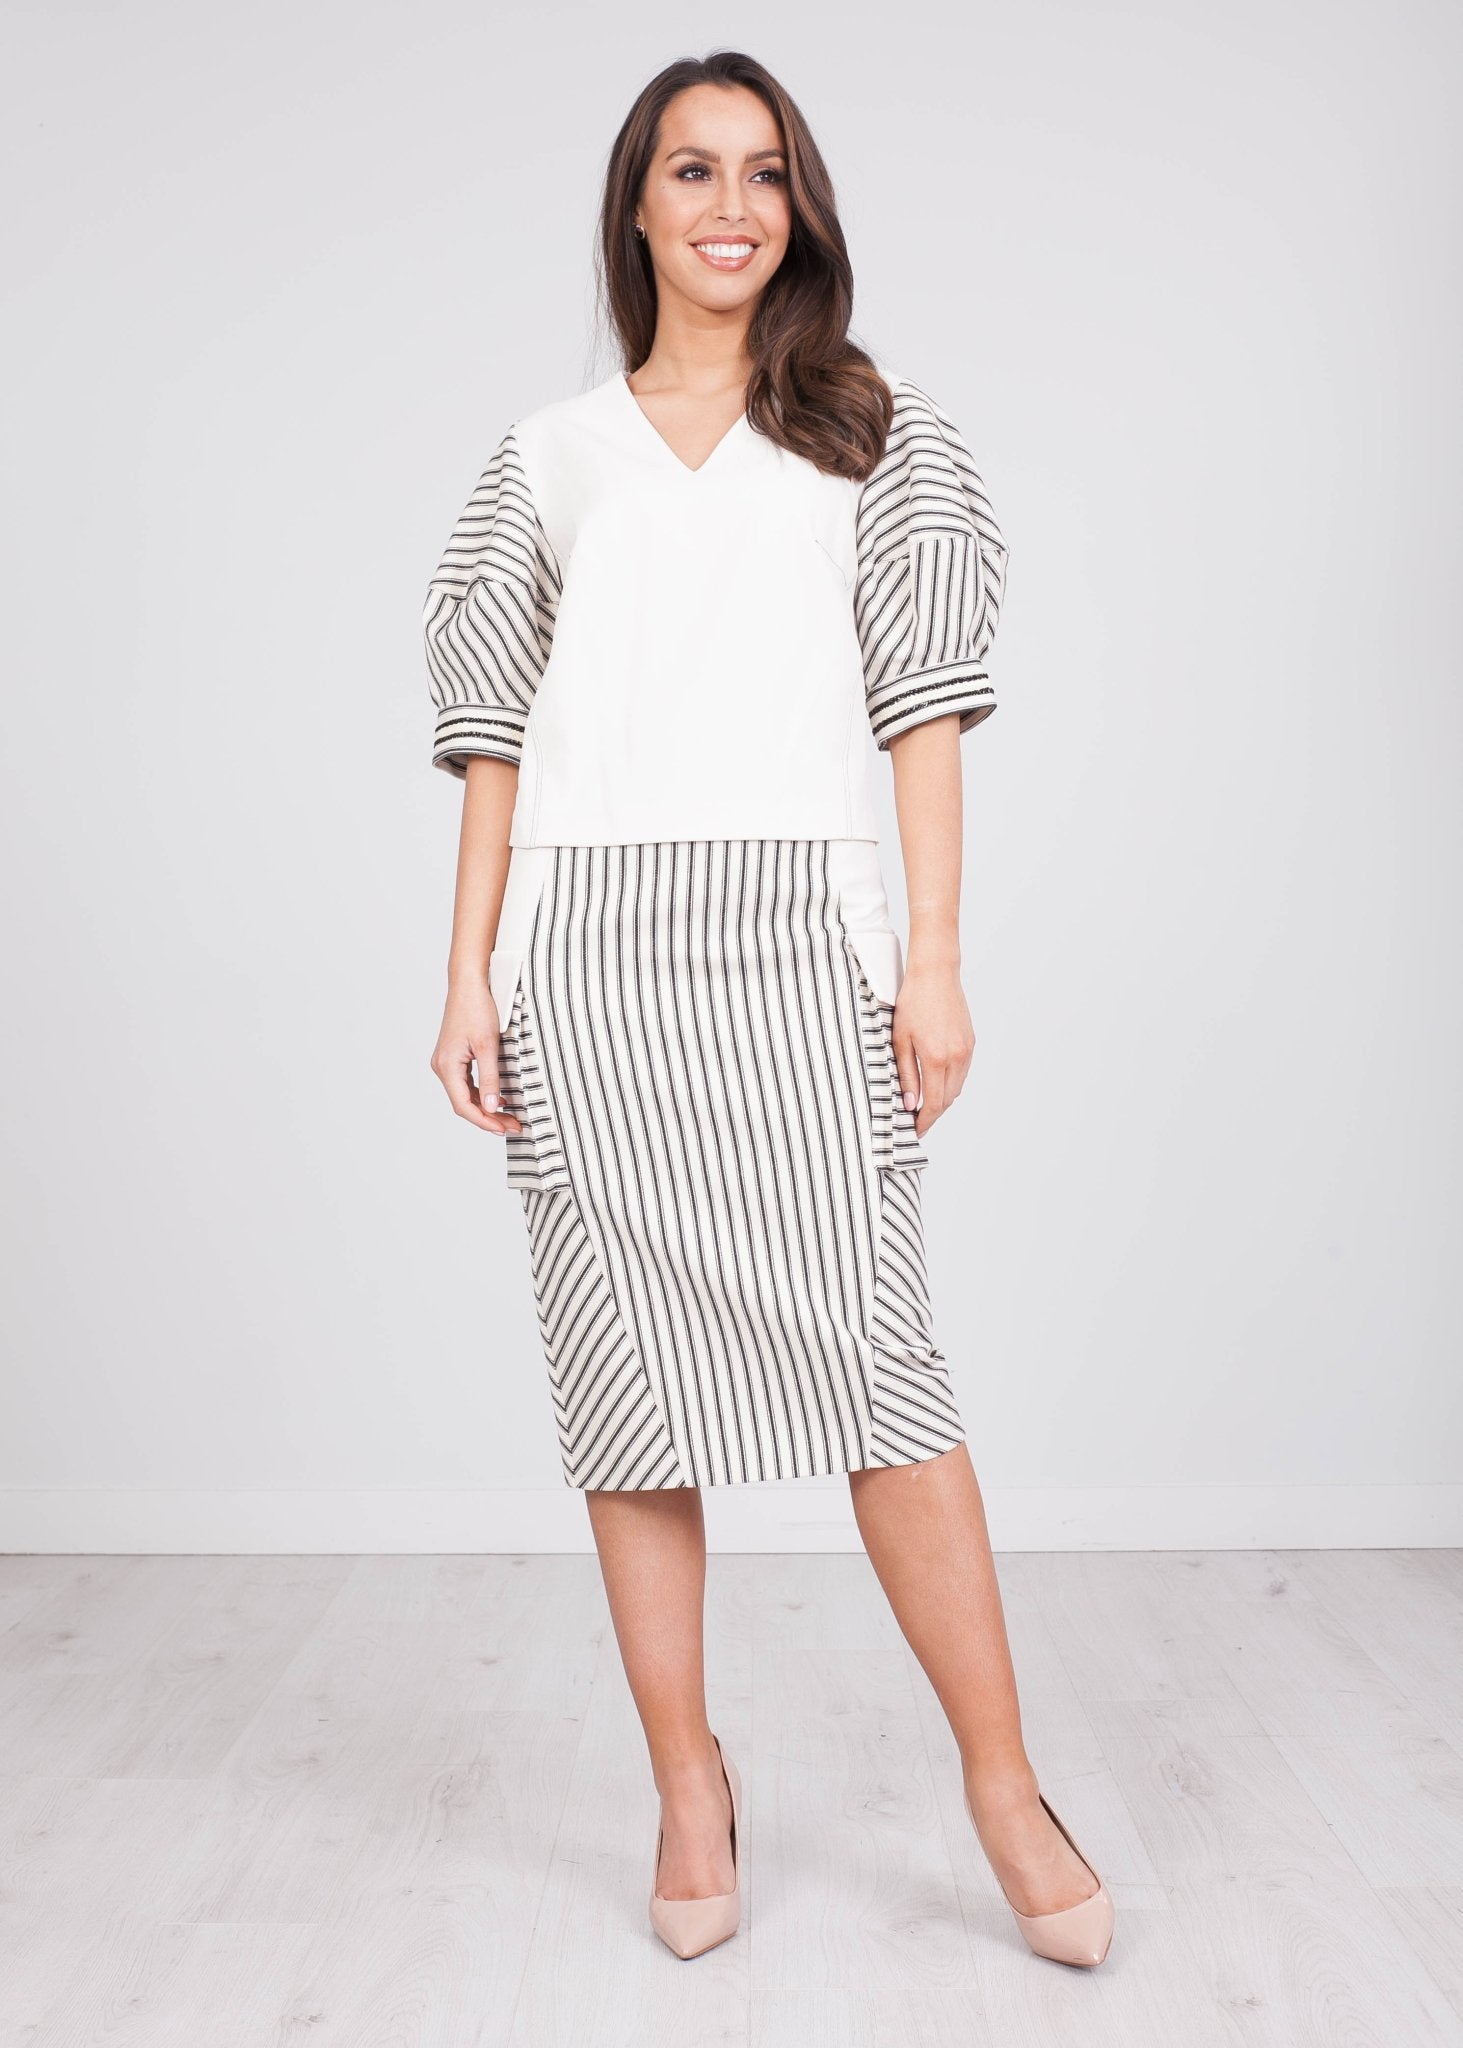 Eva Cream Stripe Two Piece - The Walk in Wardrobe